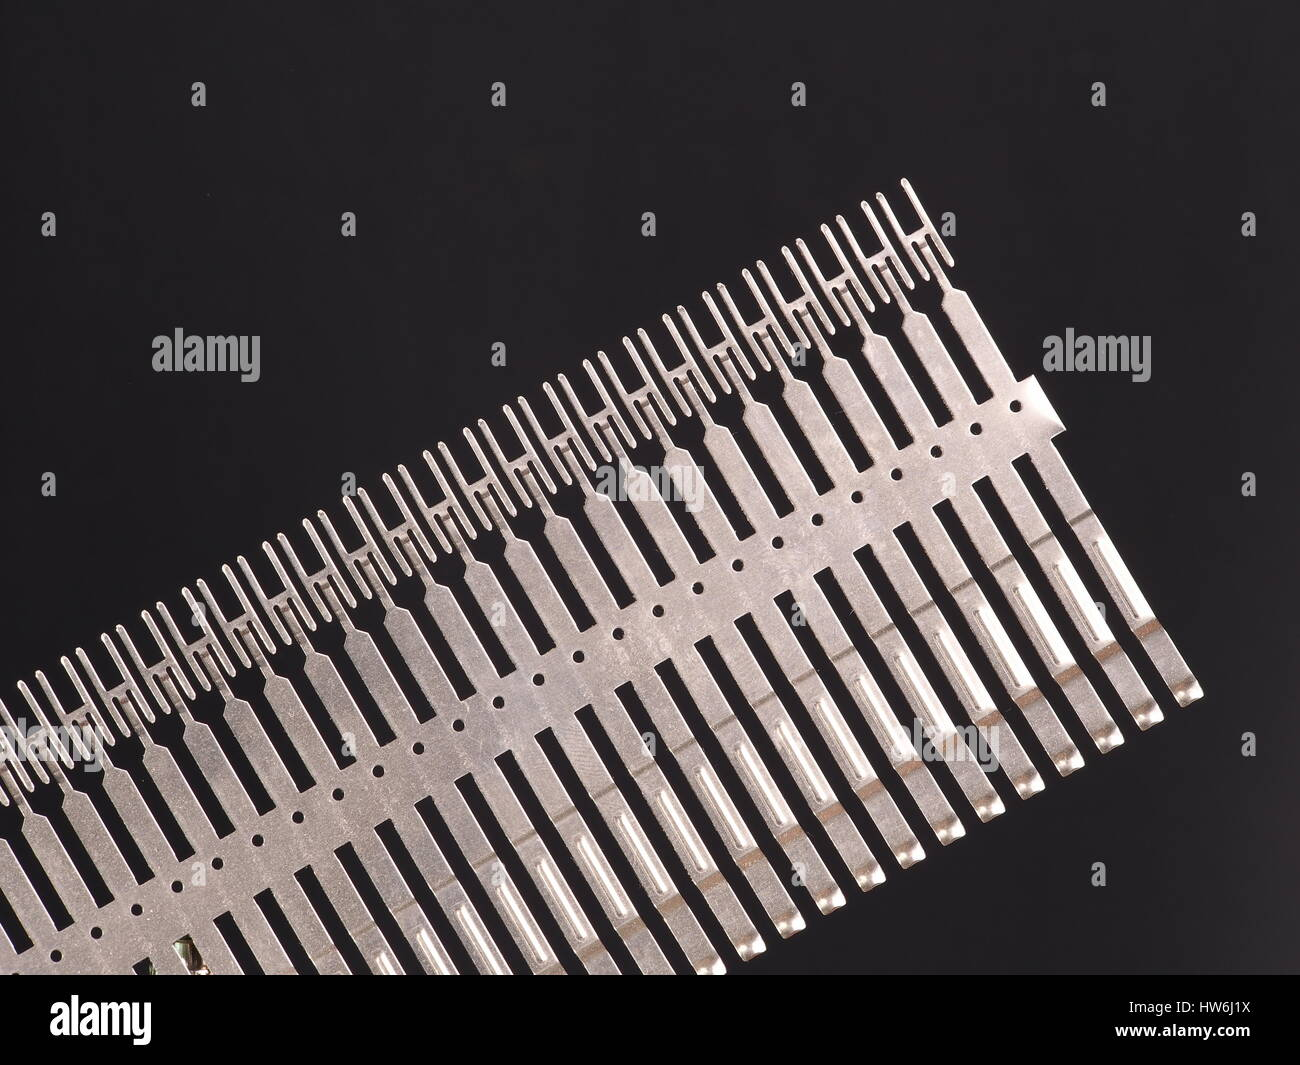 Stamped and plated row of precision springs on black background, Australia 2015 - Stock Image